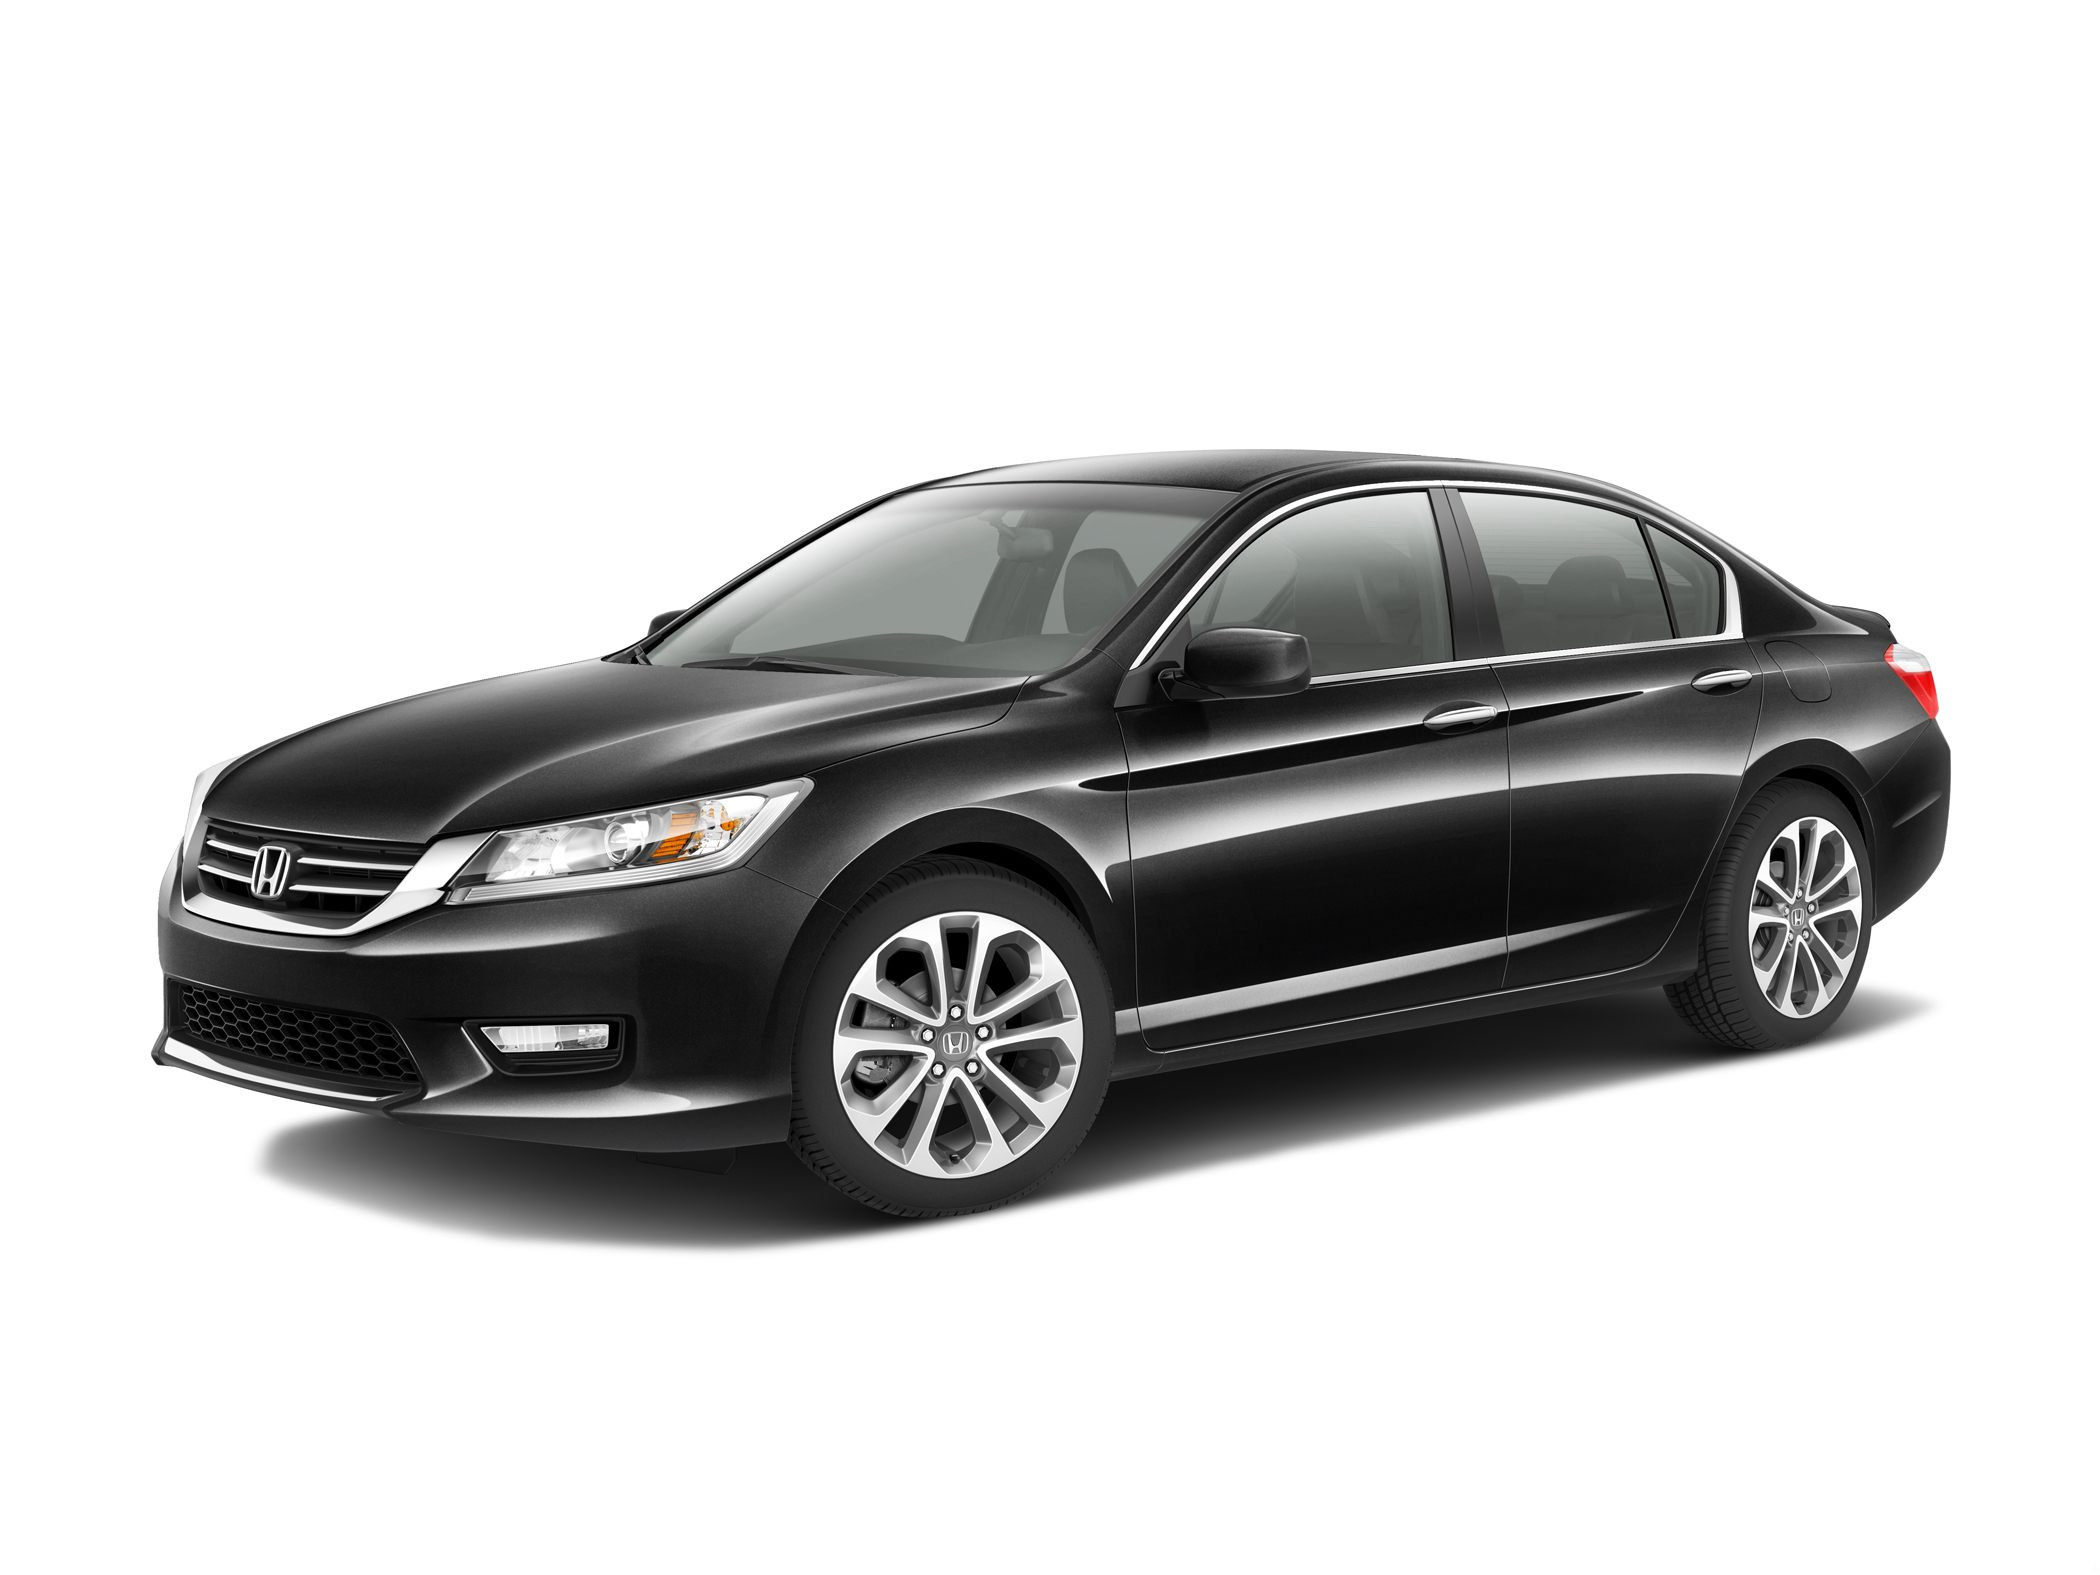 Car Rental Hyderabad With Driver >> Hyderabad Tours And Travels - Honda Accord - Hyderabad Car Rentals